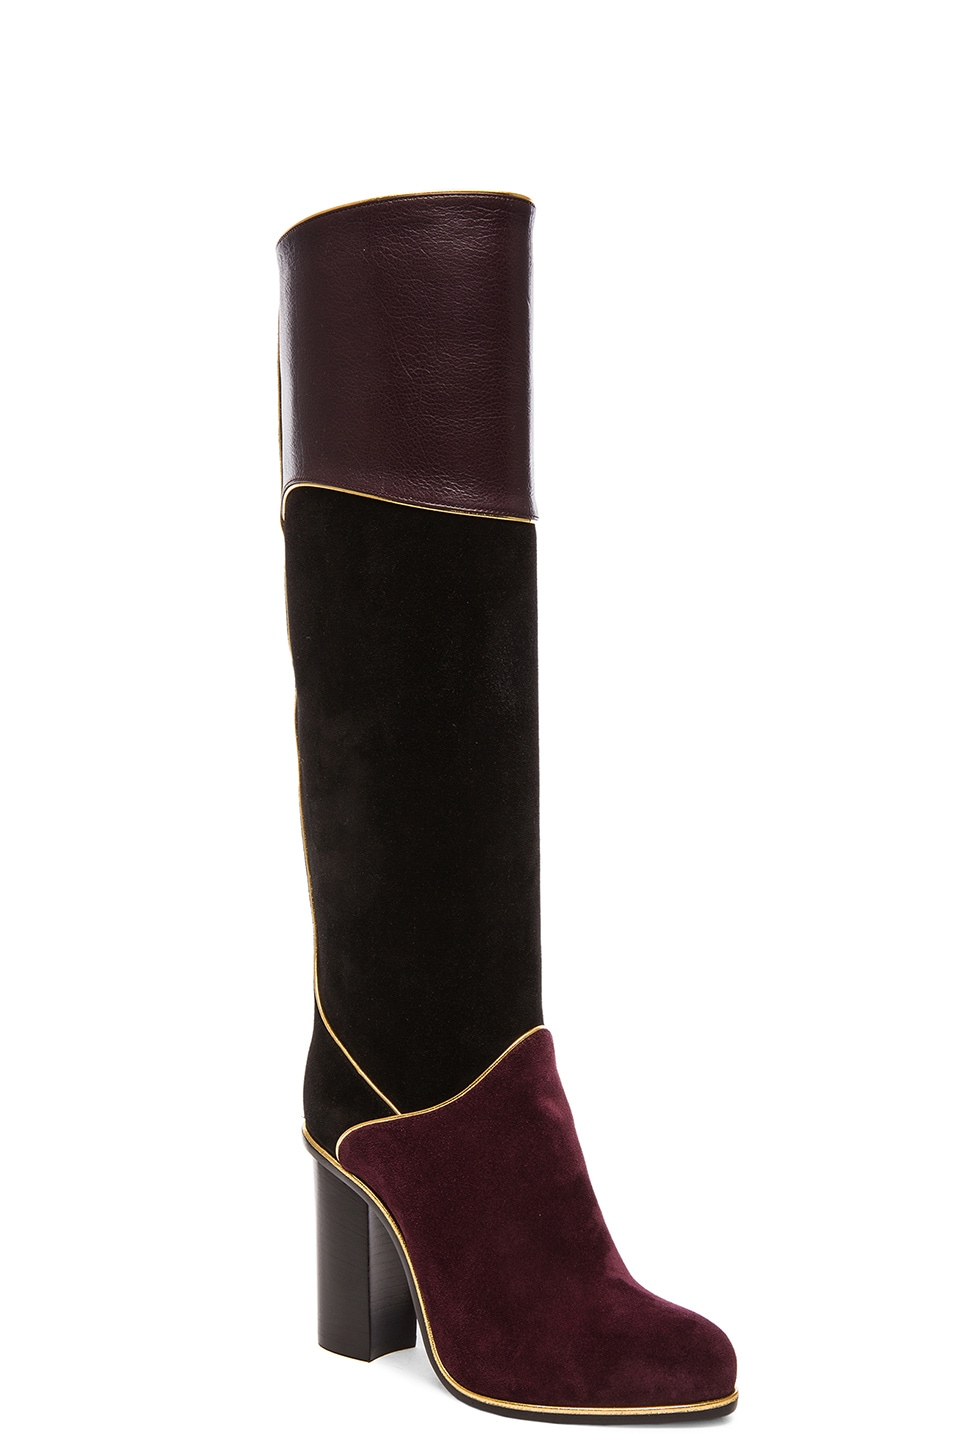 Image 2 of Lanvin Suede Calfskin Piping Boots in Black & Burgundy